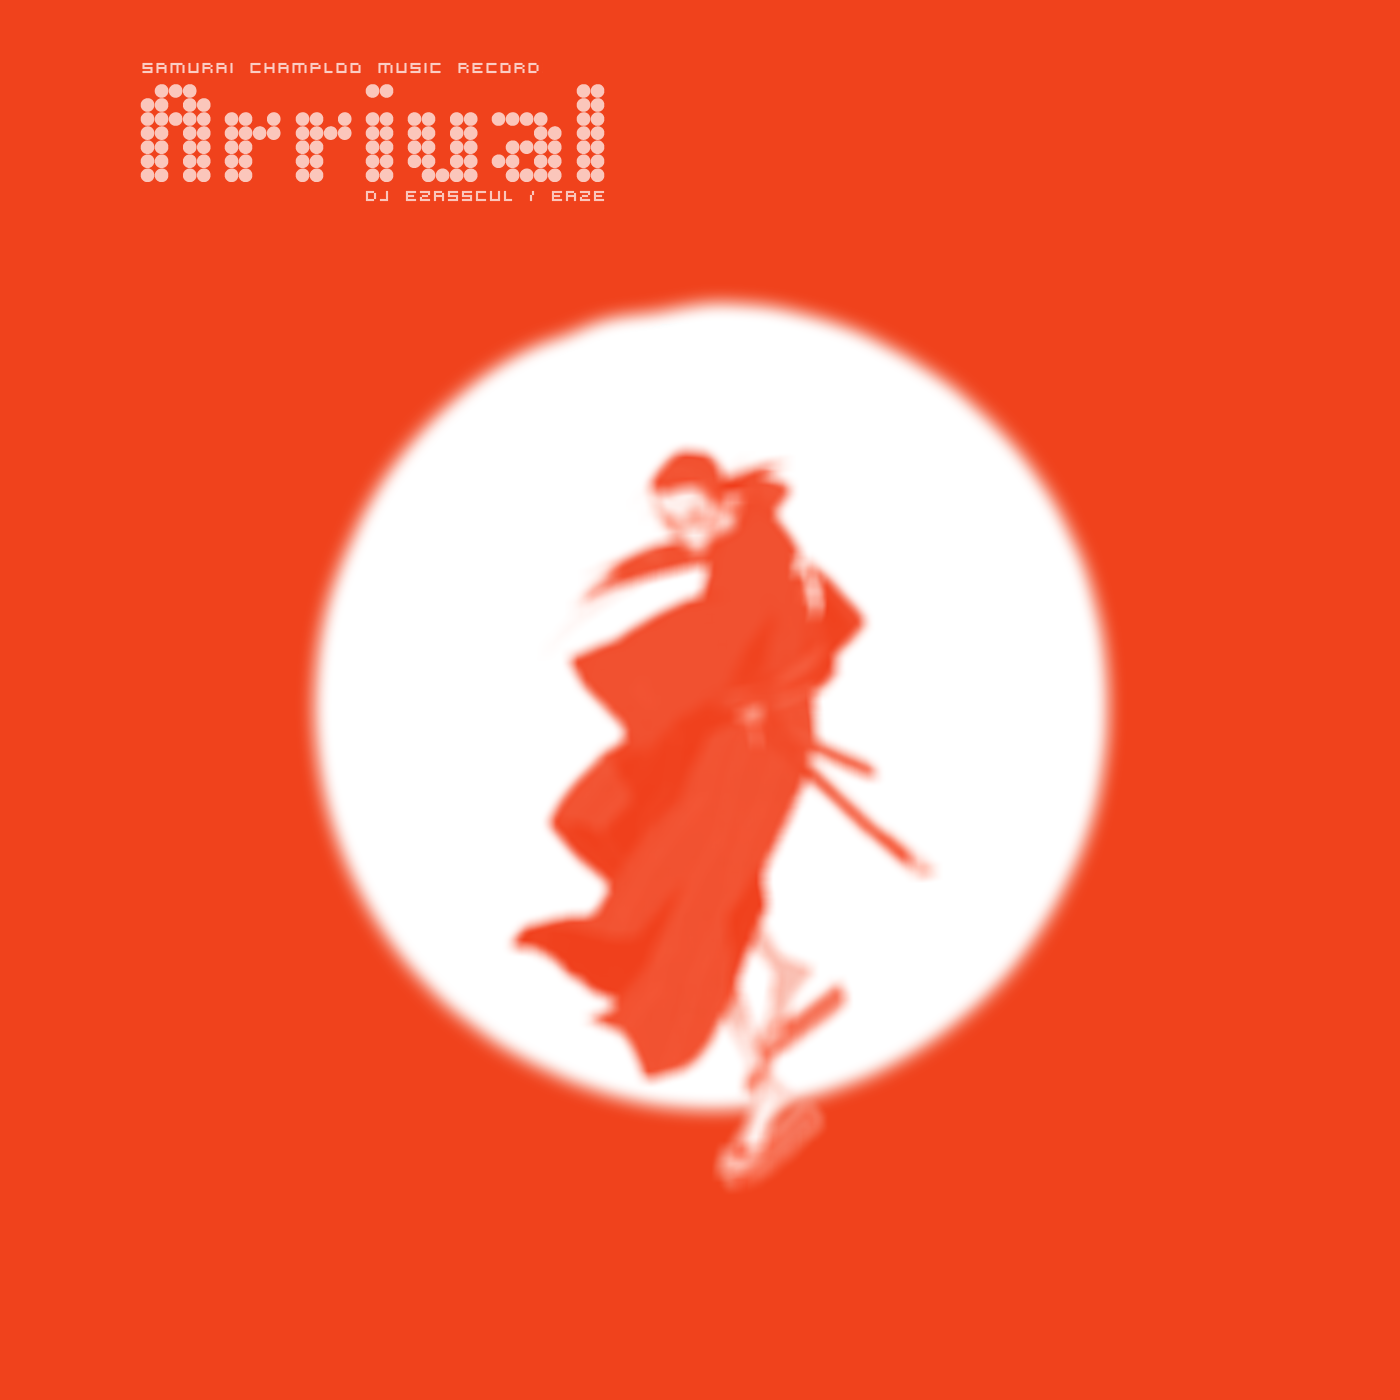 Force Of Nature / Nujabes / Fat Jon - Samurai Champloo Music Record - Impression